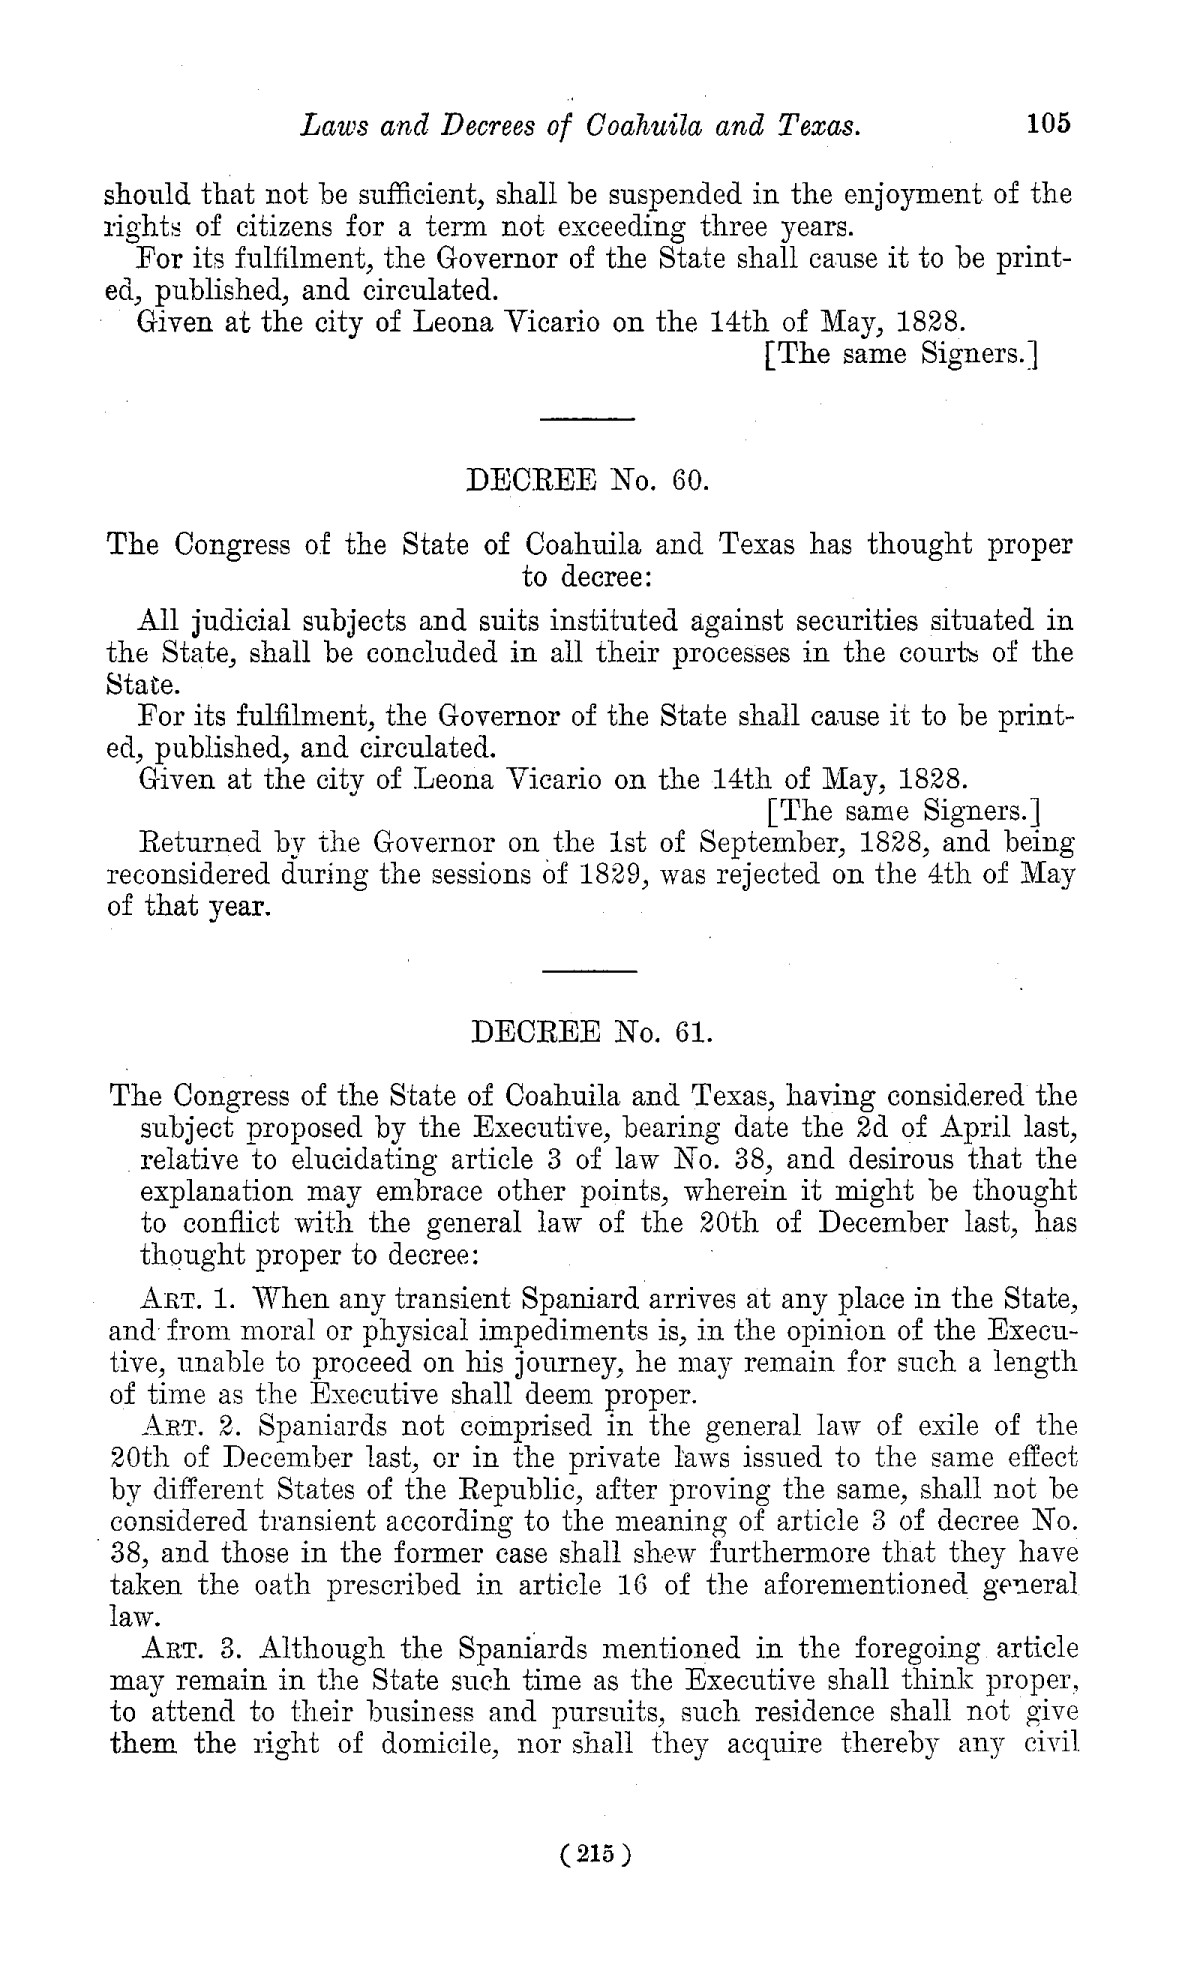 The Laws of Texas, 1822-1897 Volume 1                                                                                                      215